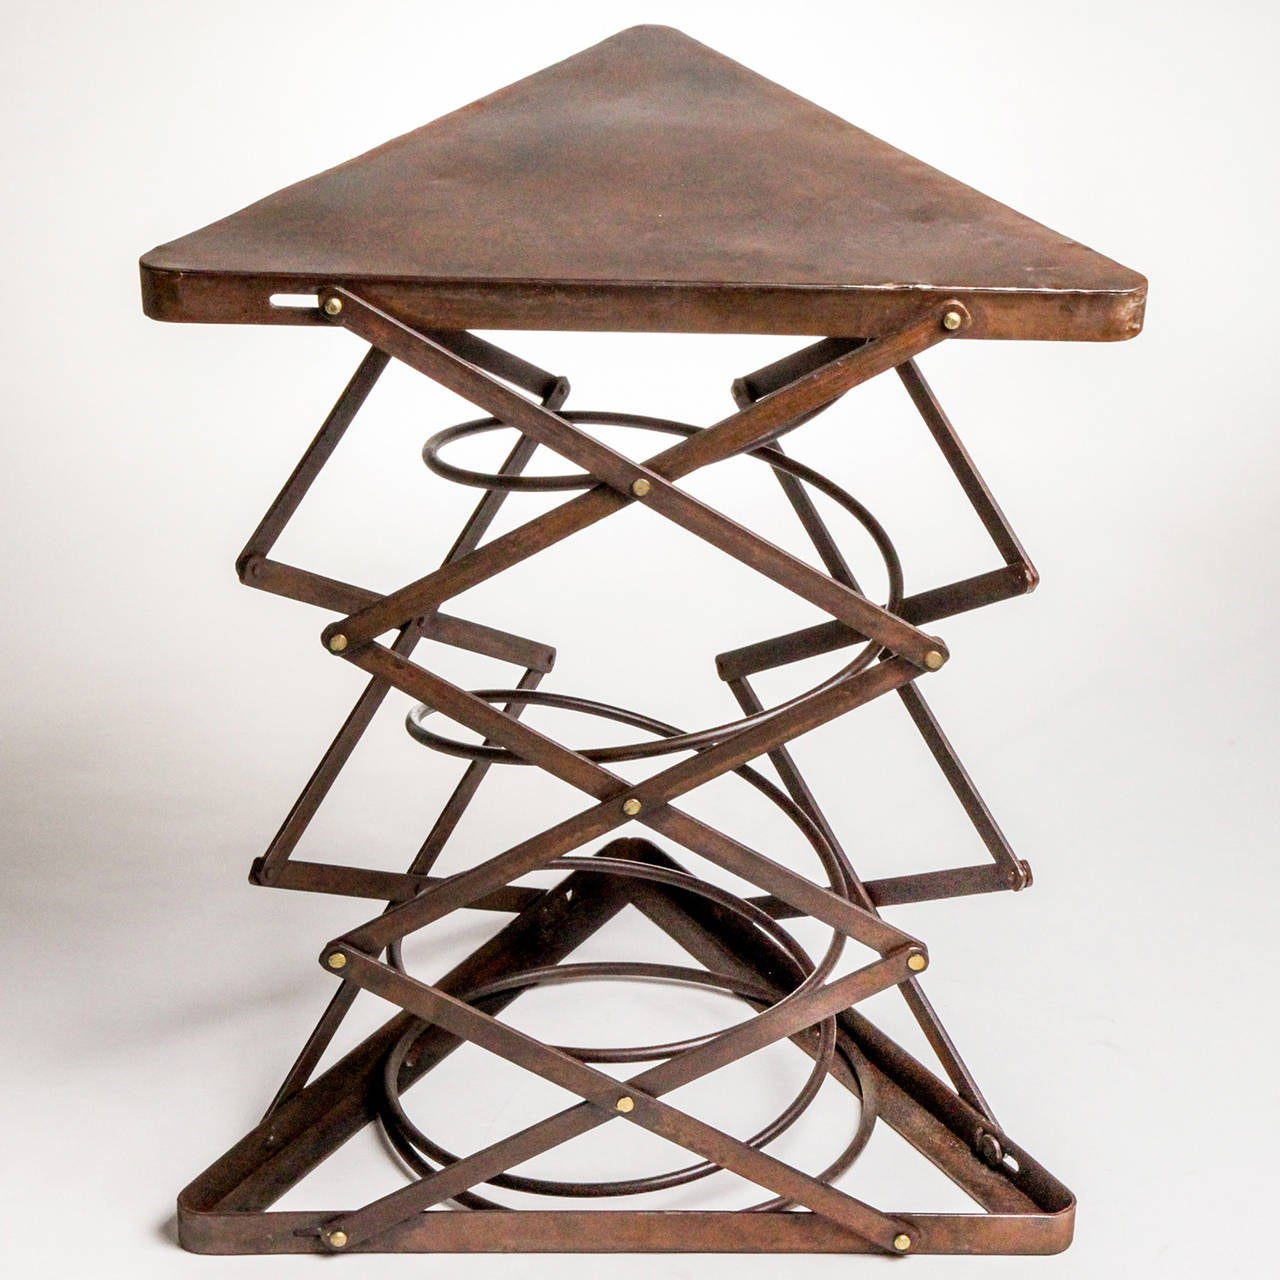 Triangular Metal Side Table For Sale at 1stdibs